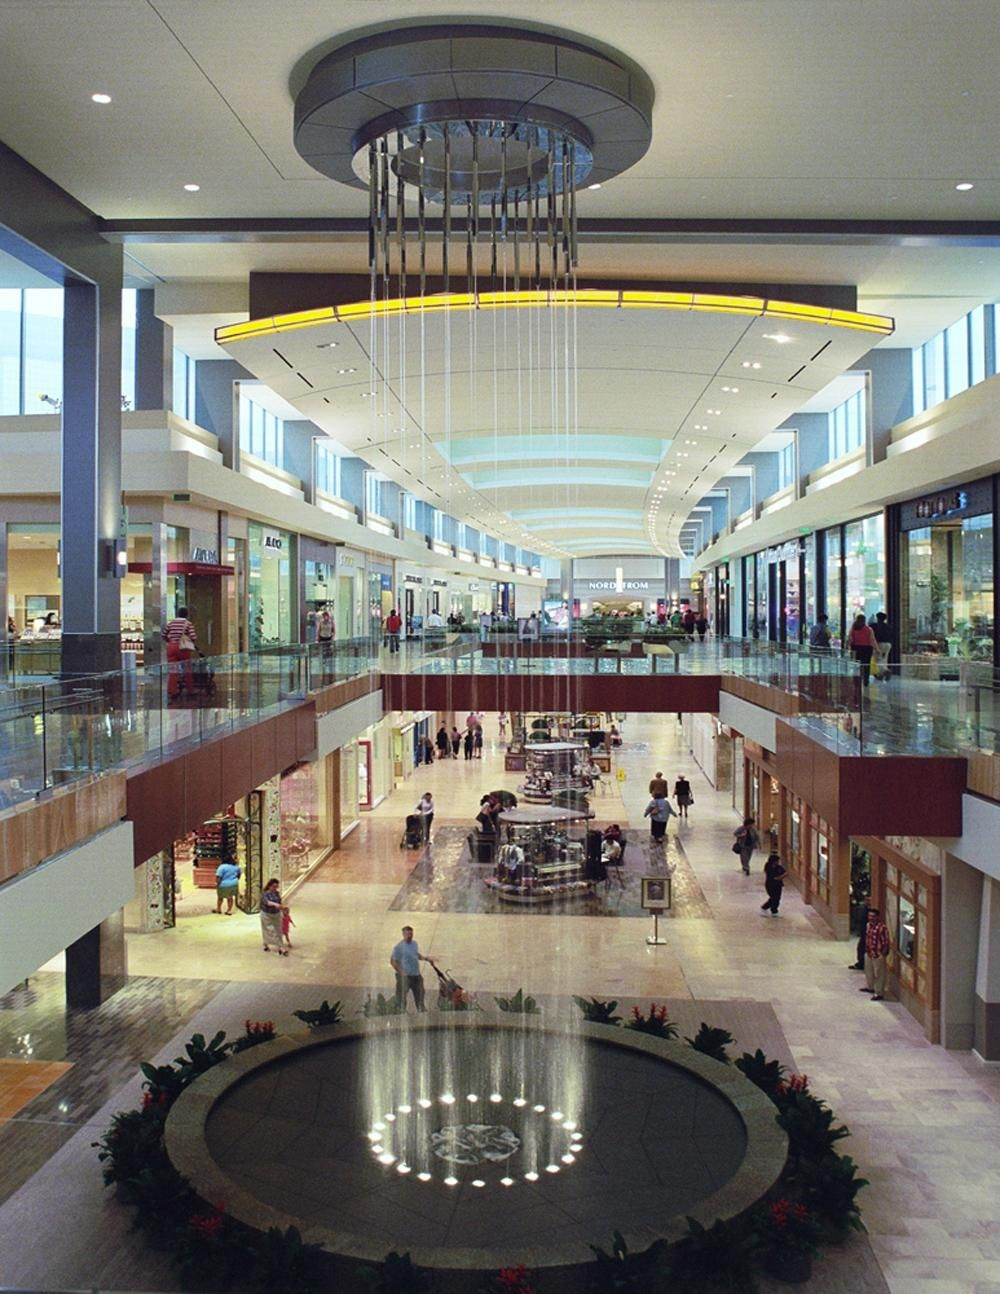 The Mall 2019 All You Need to Know BEFORE You Go (with